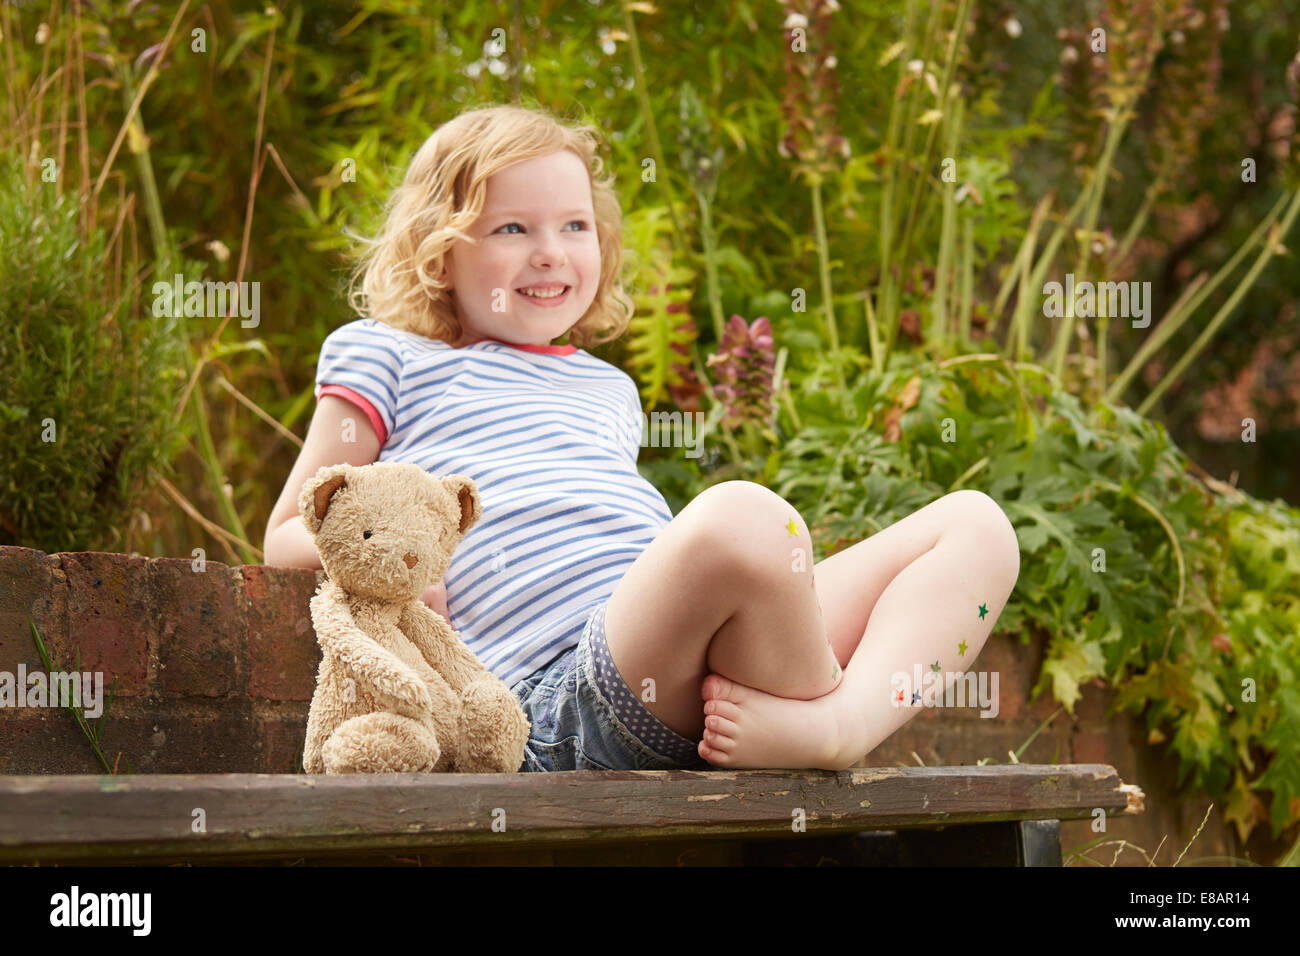 Girl on garden seat with teddy bear and star stickers on legs - Stock Image